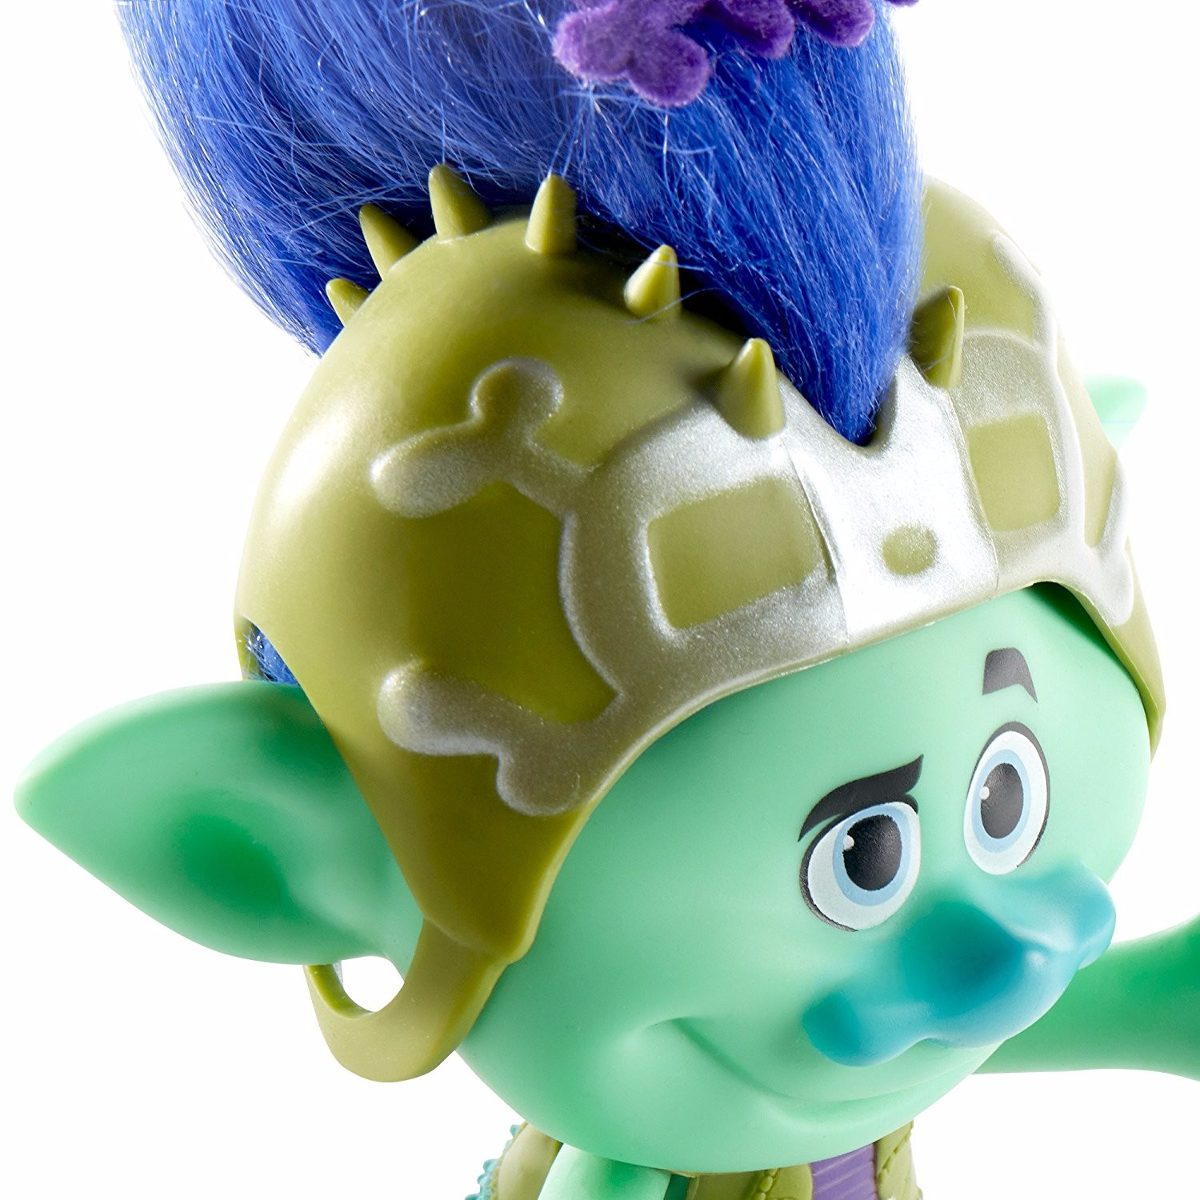 DreamWorks Trolls Branch 9-Inch Figure by Trolls